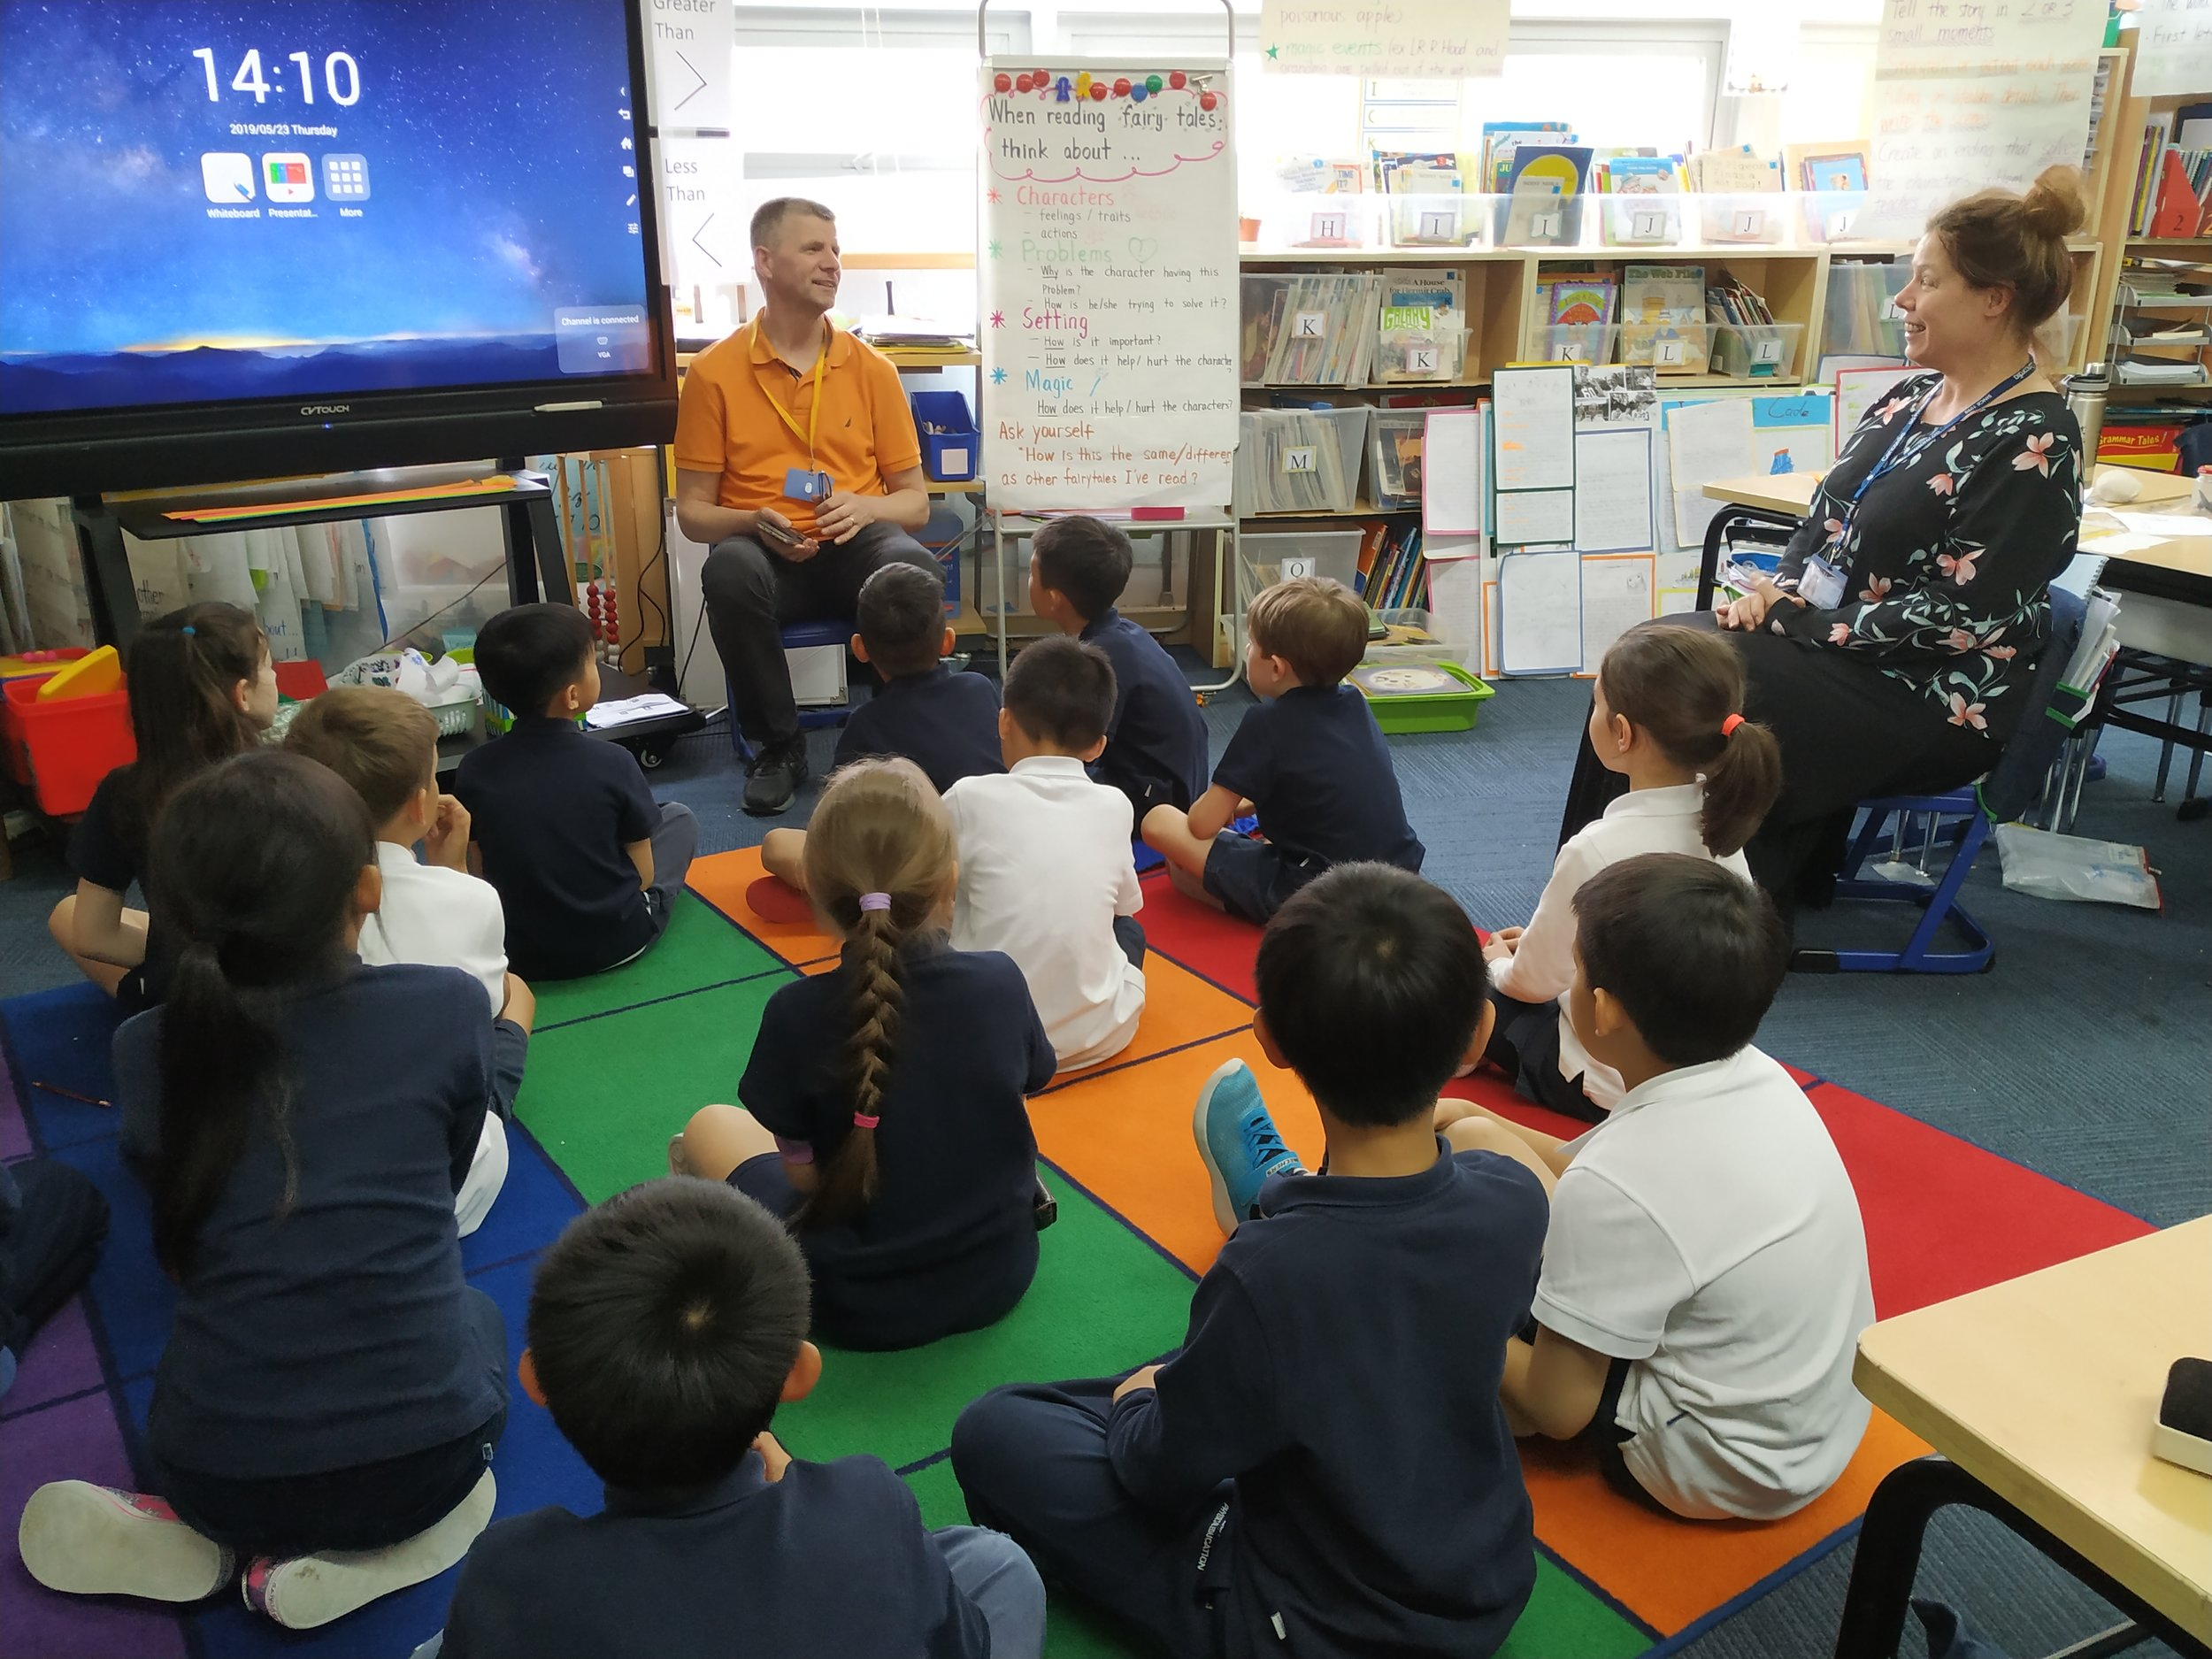 Gerie from Home Sweet Home (an organization that provides support to homeless people in Shanghai) talks with grade 2 students in May 2019.